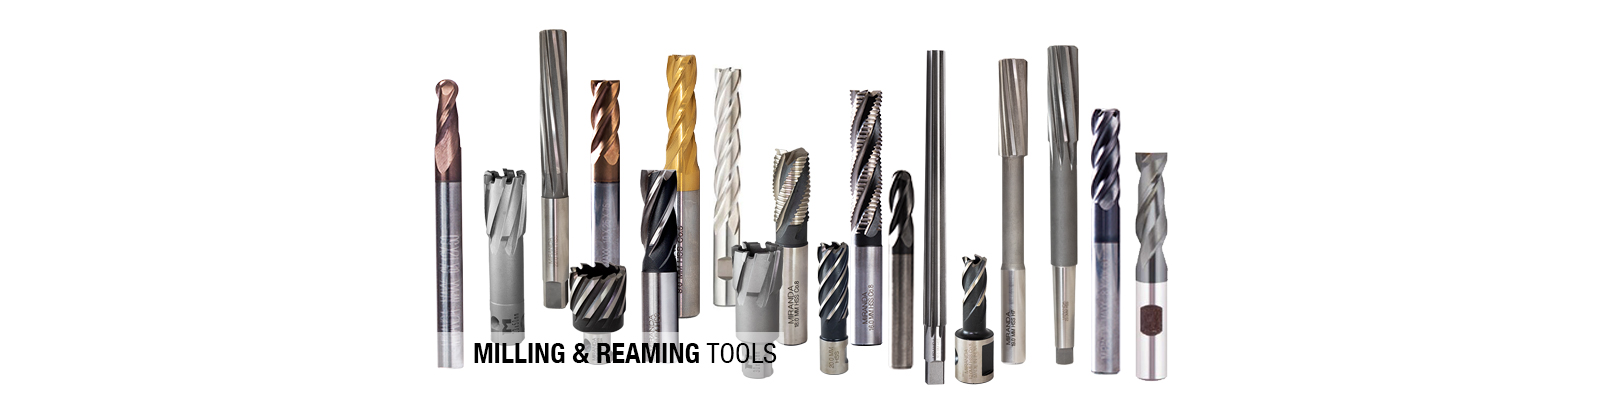 Milling & Reaming Tools